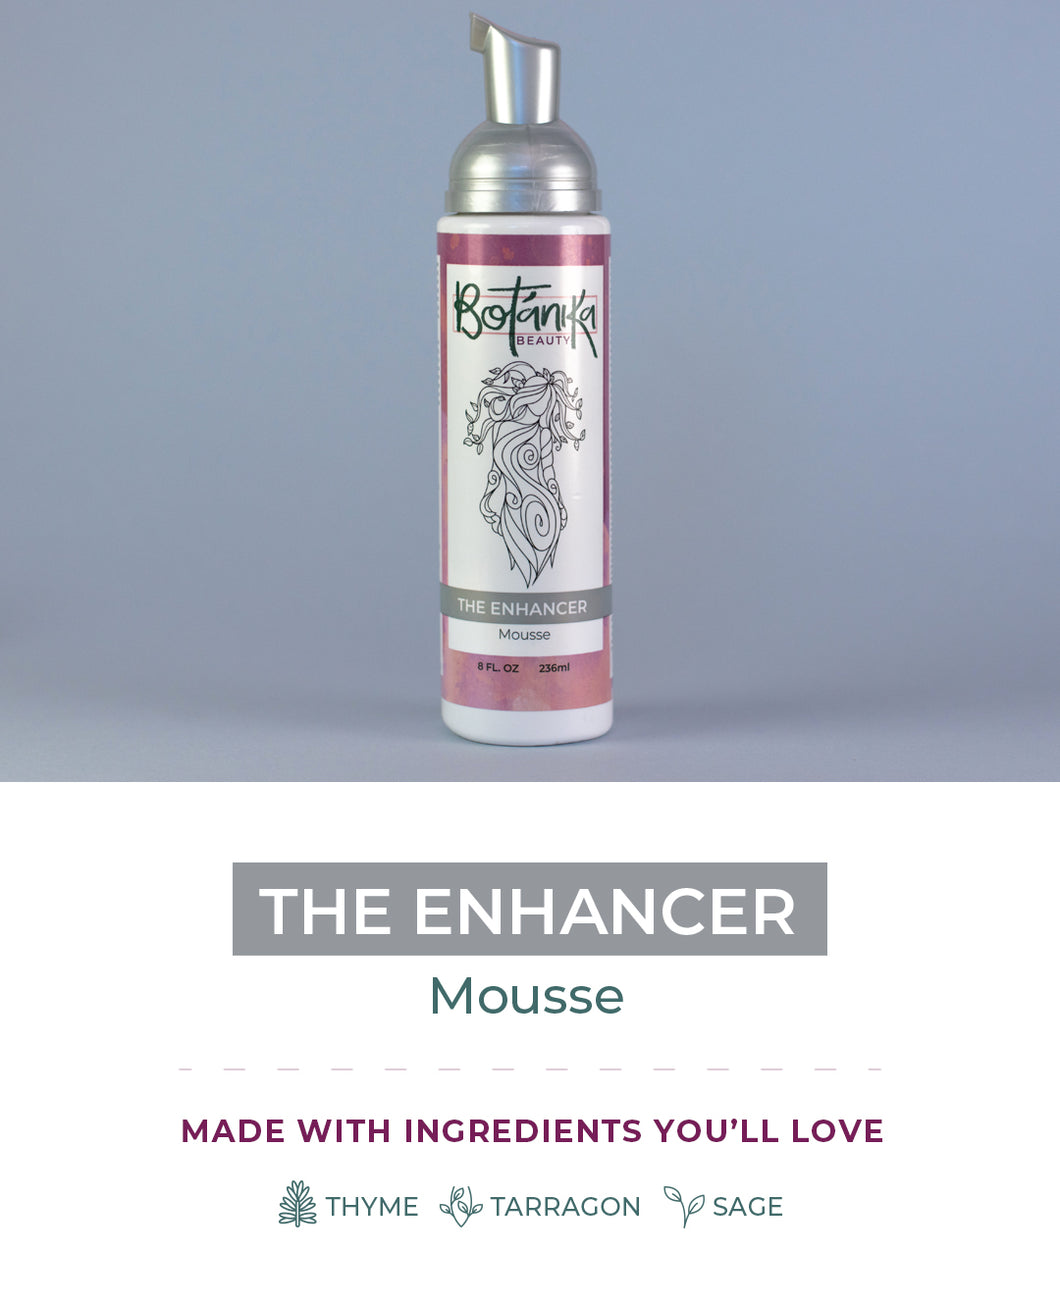 The Enhancer Mousse